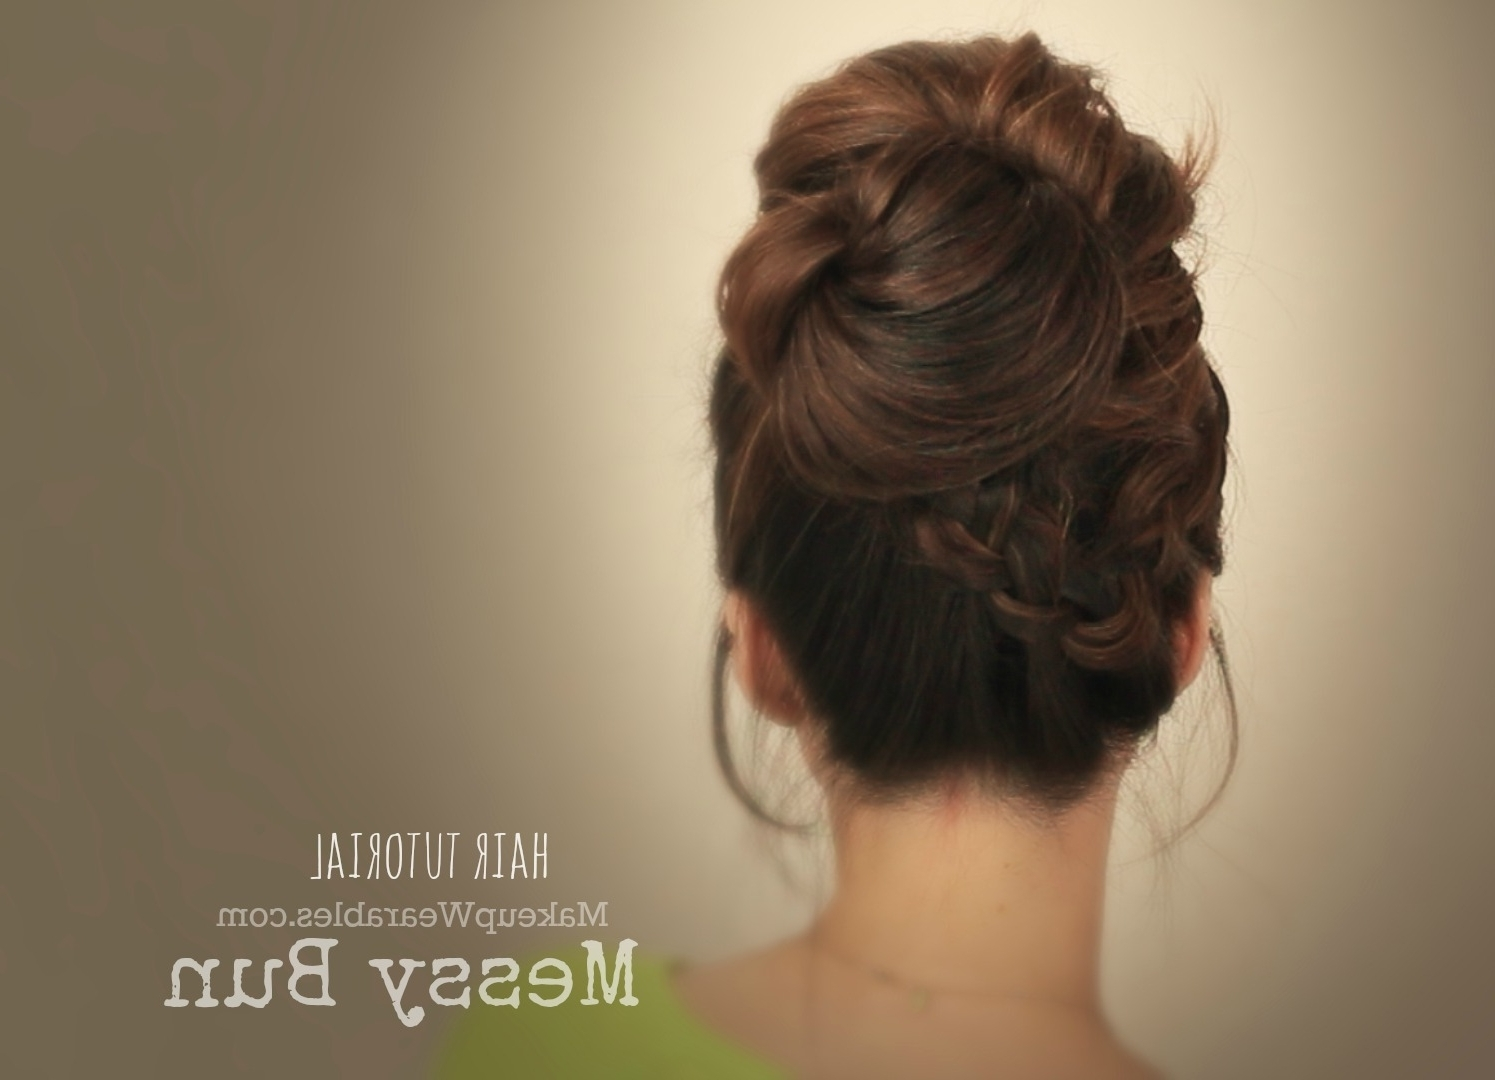 Cute Messy Bun Quick Everyday Updo Hairstyles Hair Tutorial Videos Pertaining To Messy Hair Updo Hairstyles For Long Hair (View 11 of 15)